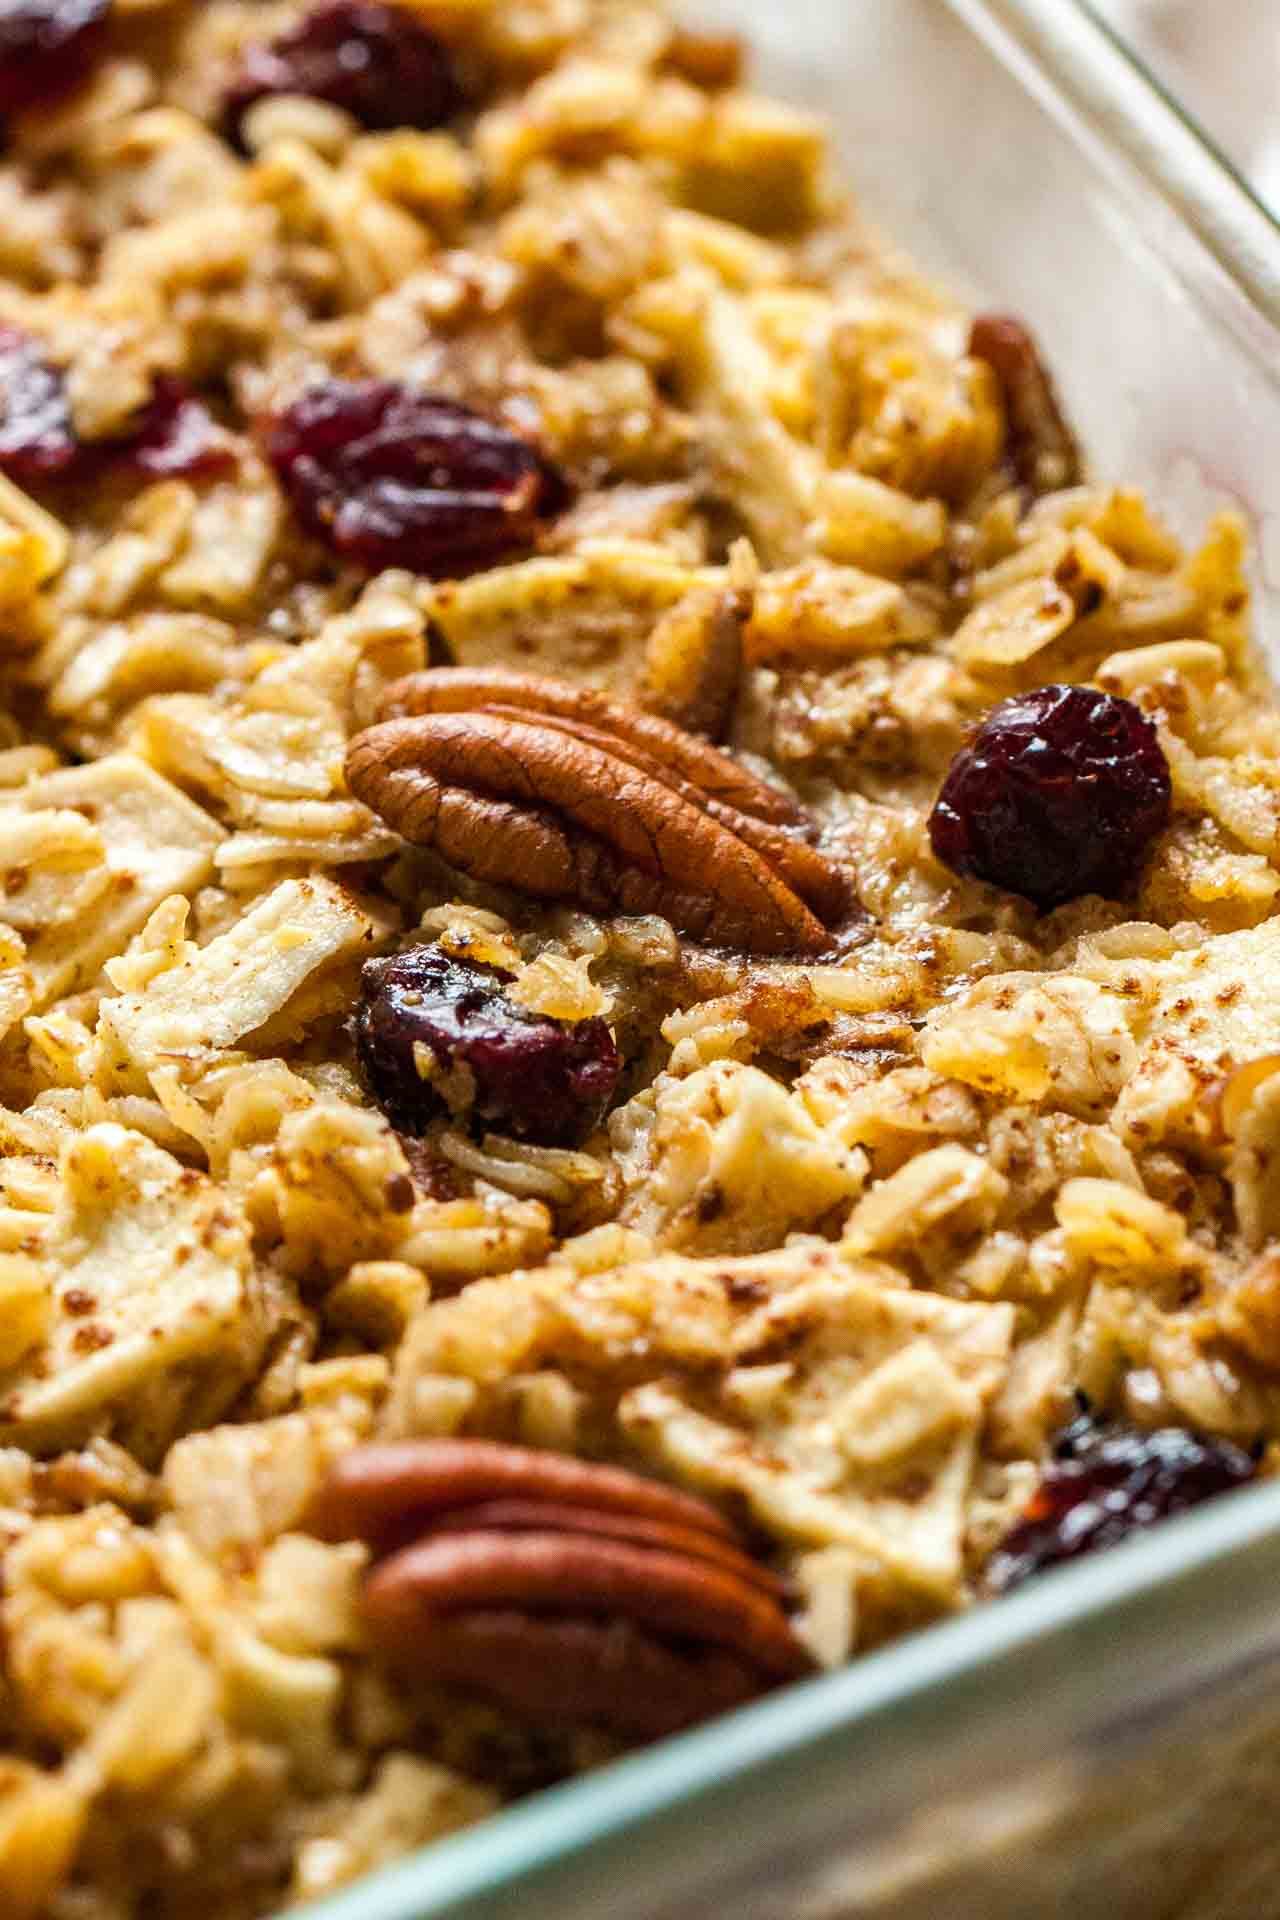 Easy Baked Oatmeal Recipe With Apples Cranberries And Pecans